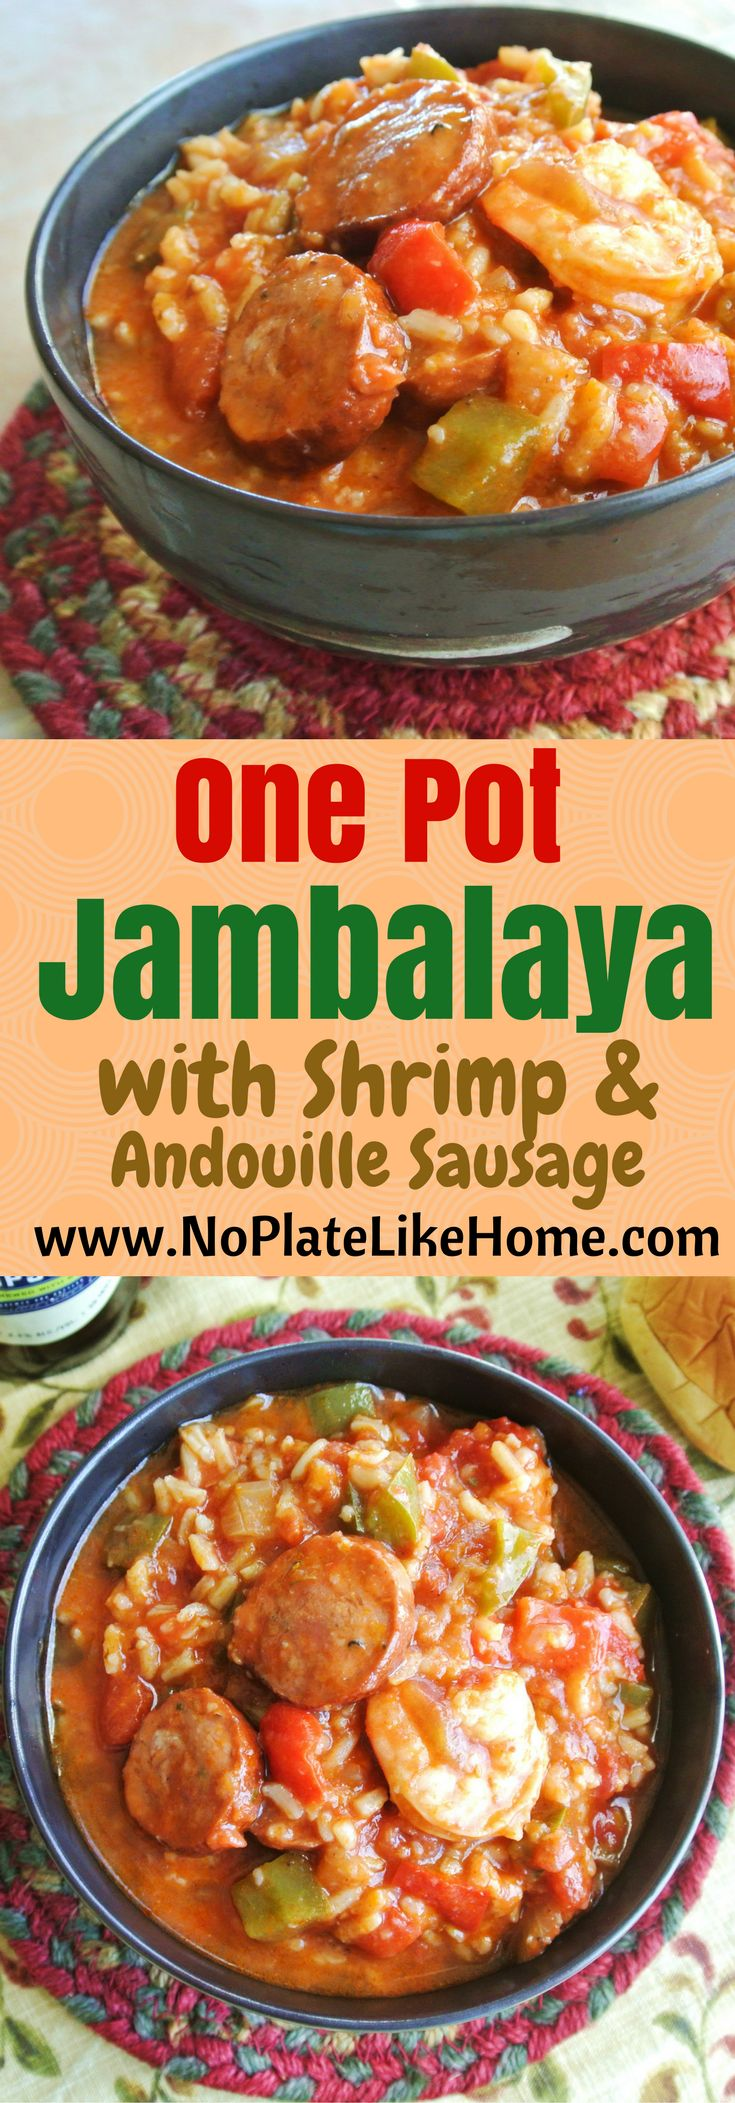 An easy and spicy one pot Jambalaya recipe with shrimp and Andouille sausage. Add celery, cayenne, subtract the paprika. Add parsley.